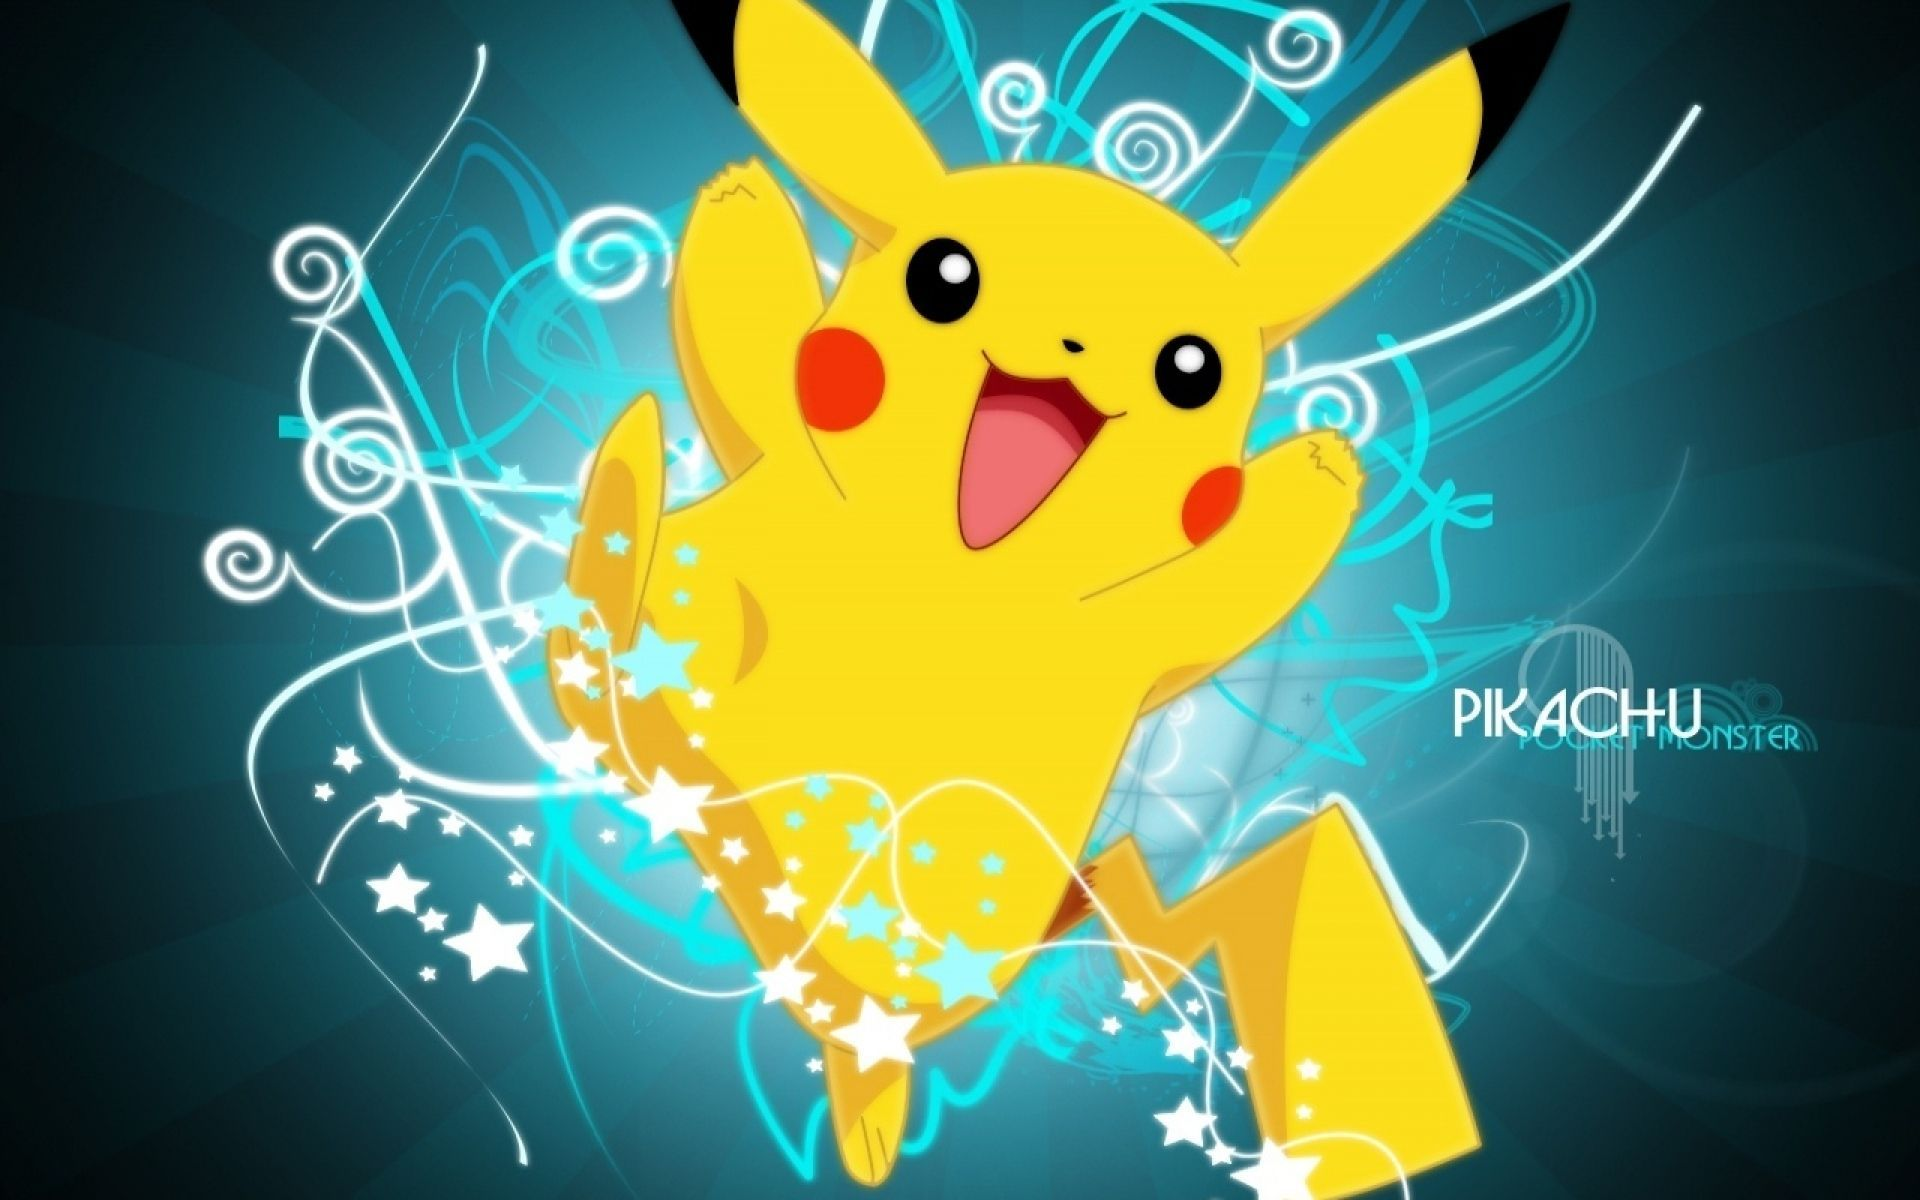 Pokemon Wallpaper: Find best latest Pokemon Wallpaper in HD for your PC desktop background & mobile phones.